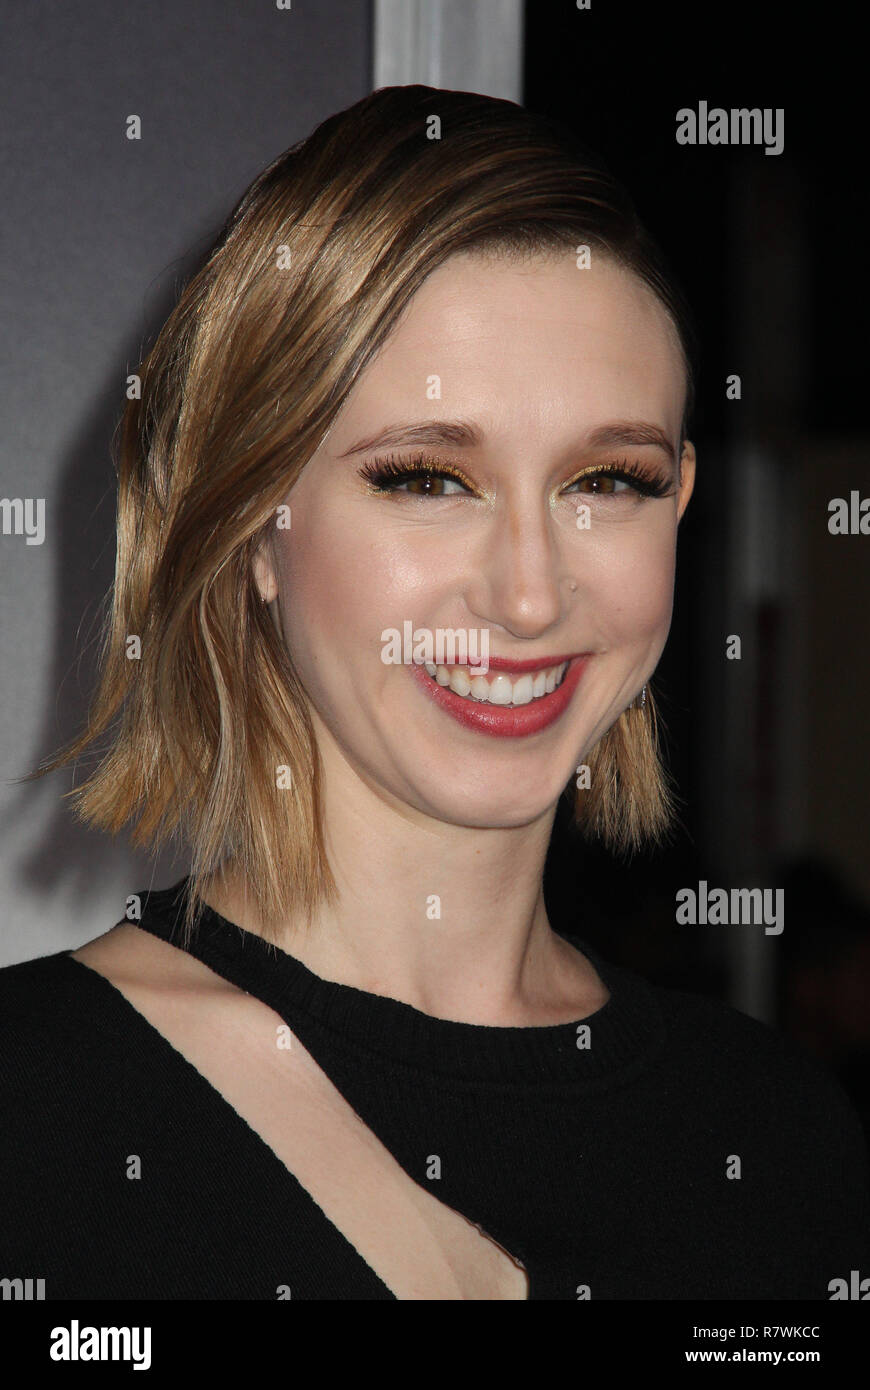 Taissa Farmiga  12/10/2018 The World Premiere of 'The Mule' held at the Regency Village Theatre in Los Angeles, CA  Photo: Cronos/Hollywood News - Stock Image